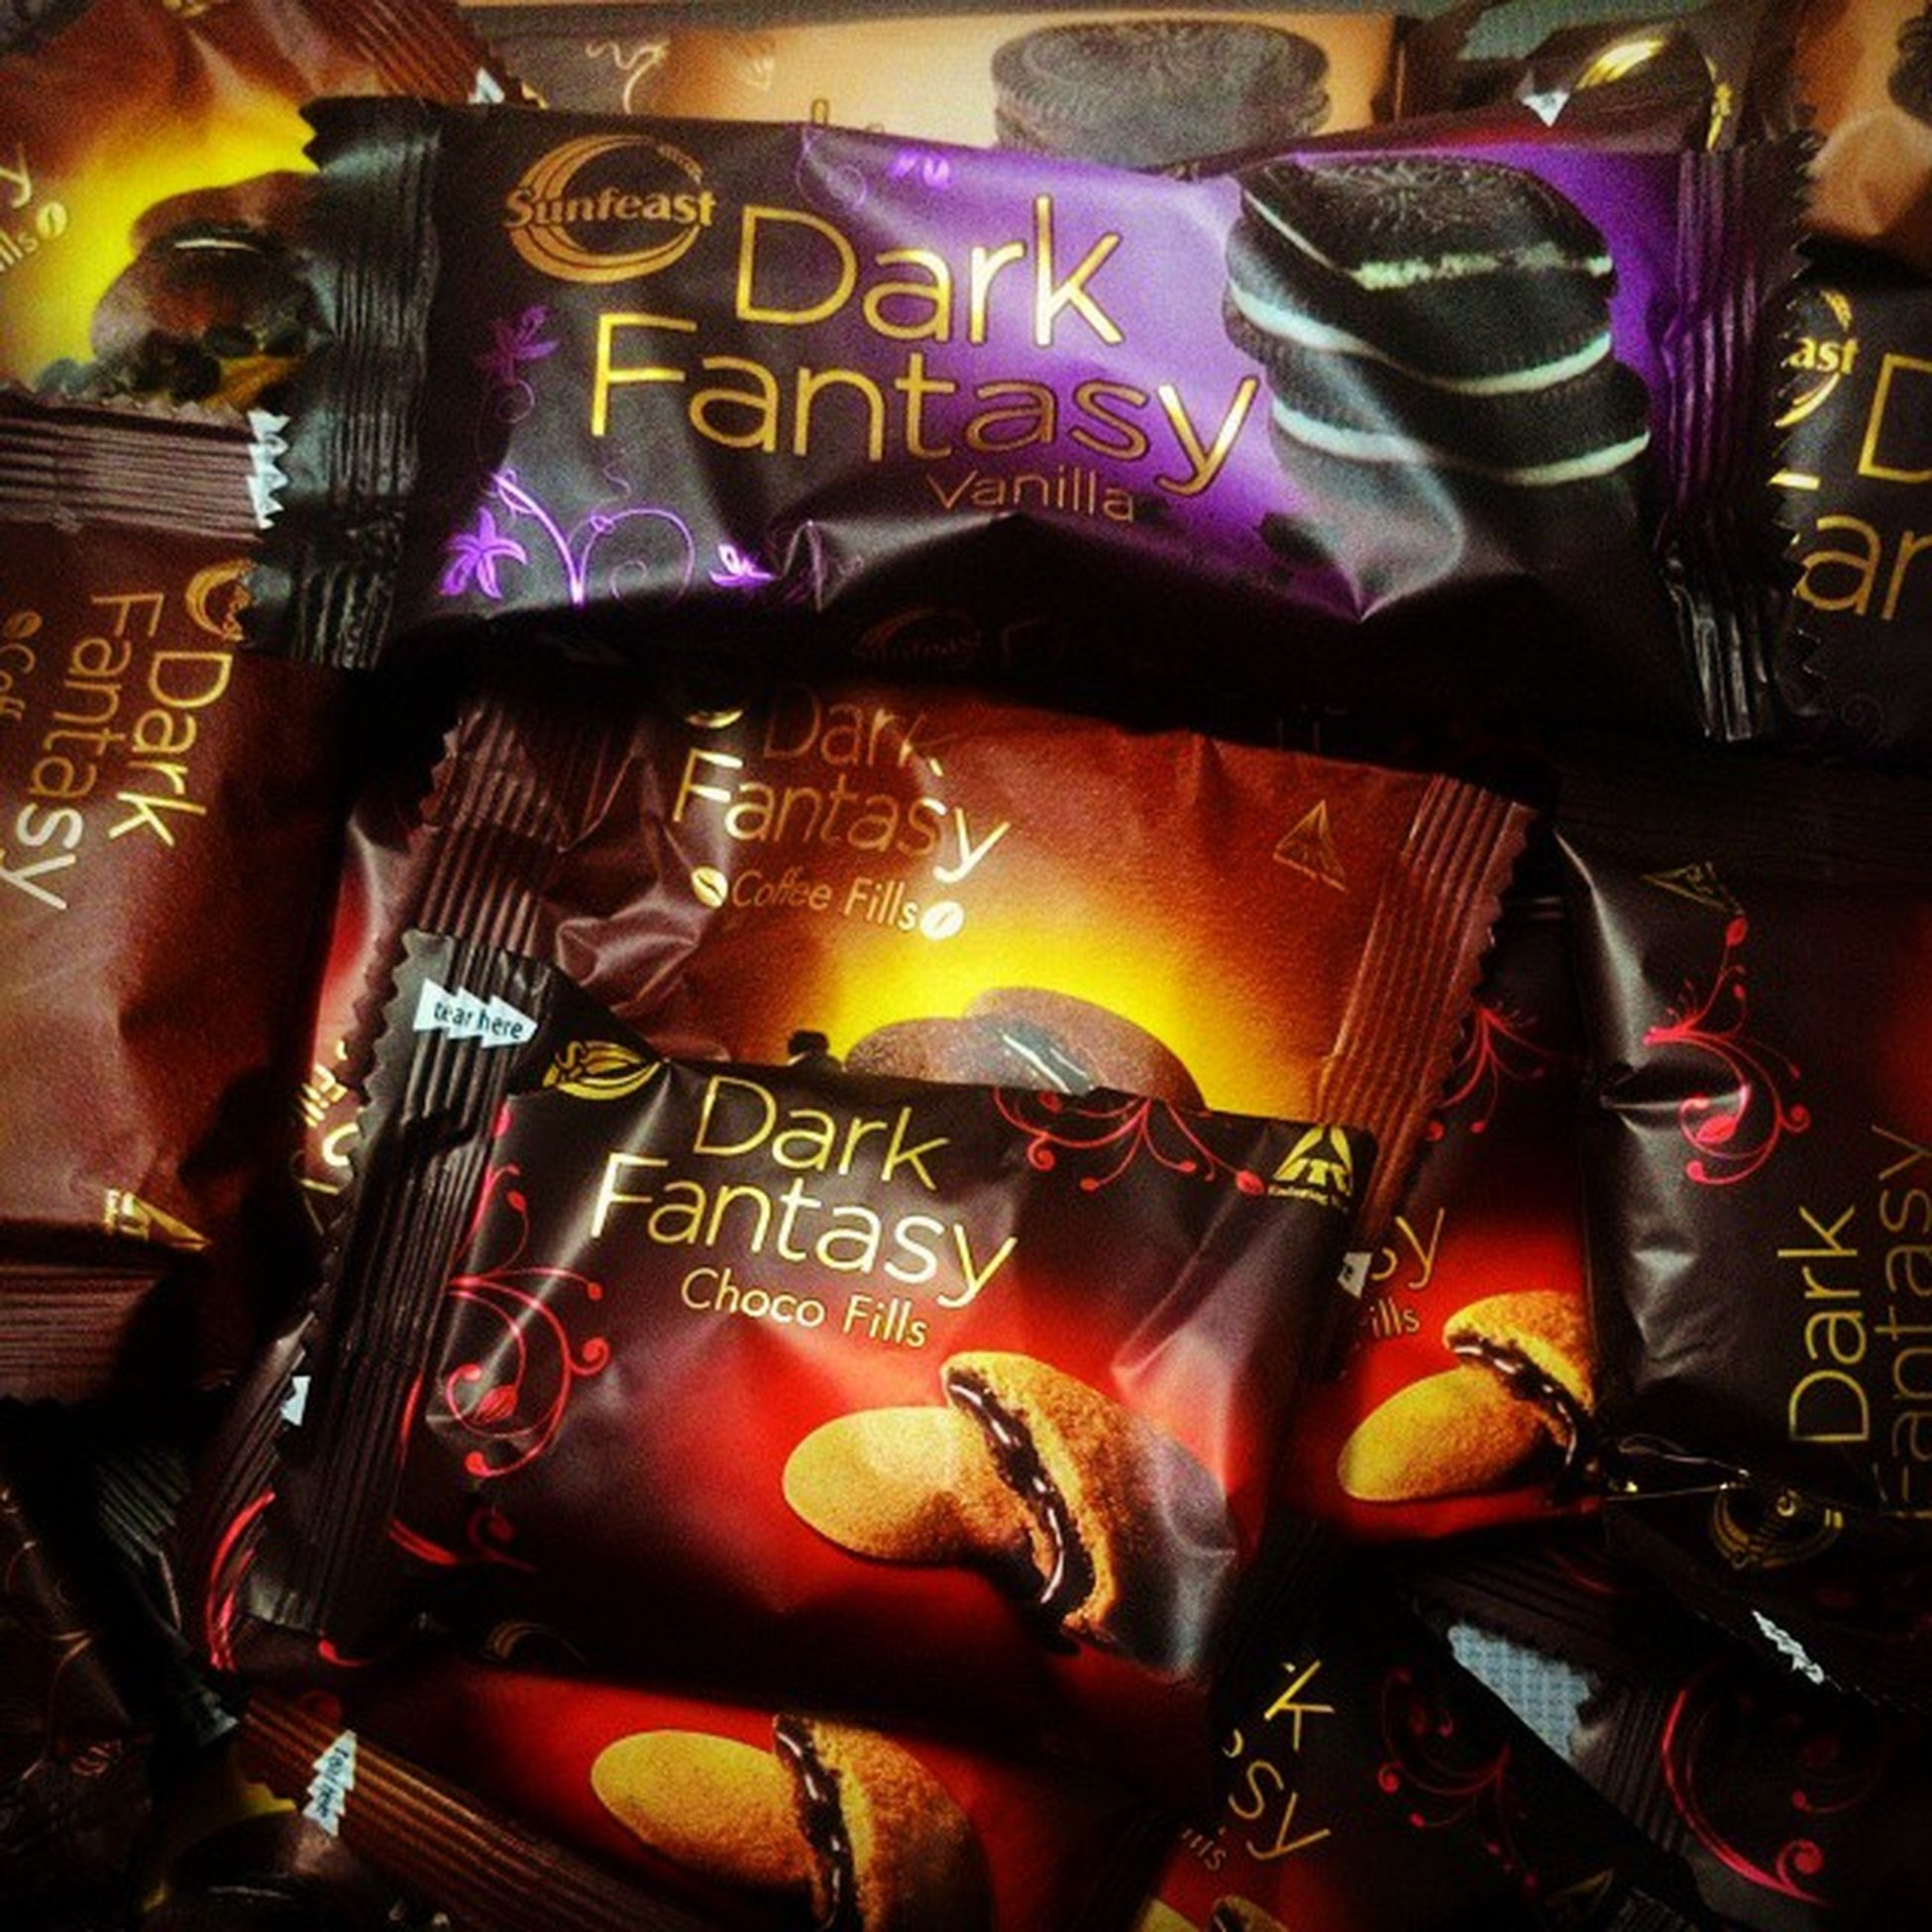 Happiness is Dark Fantasy. Gift Chocofills